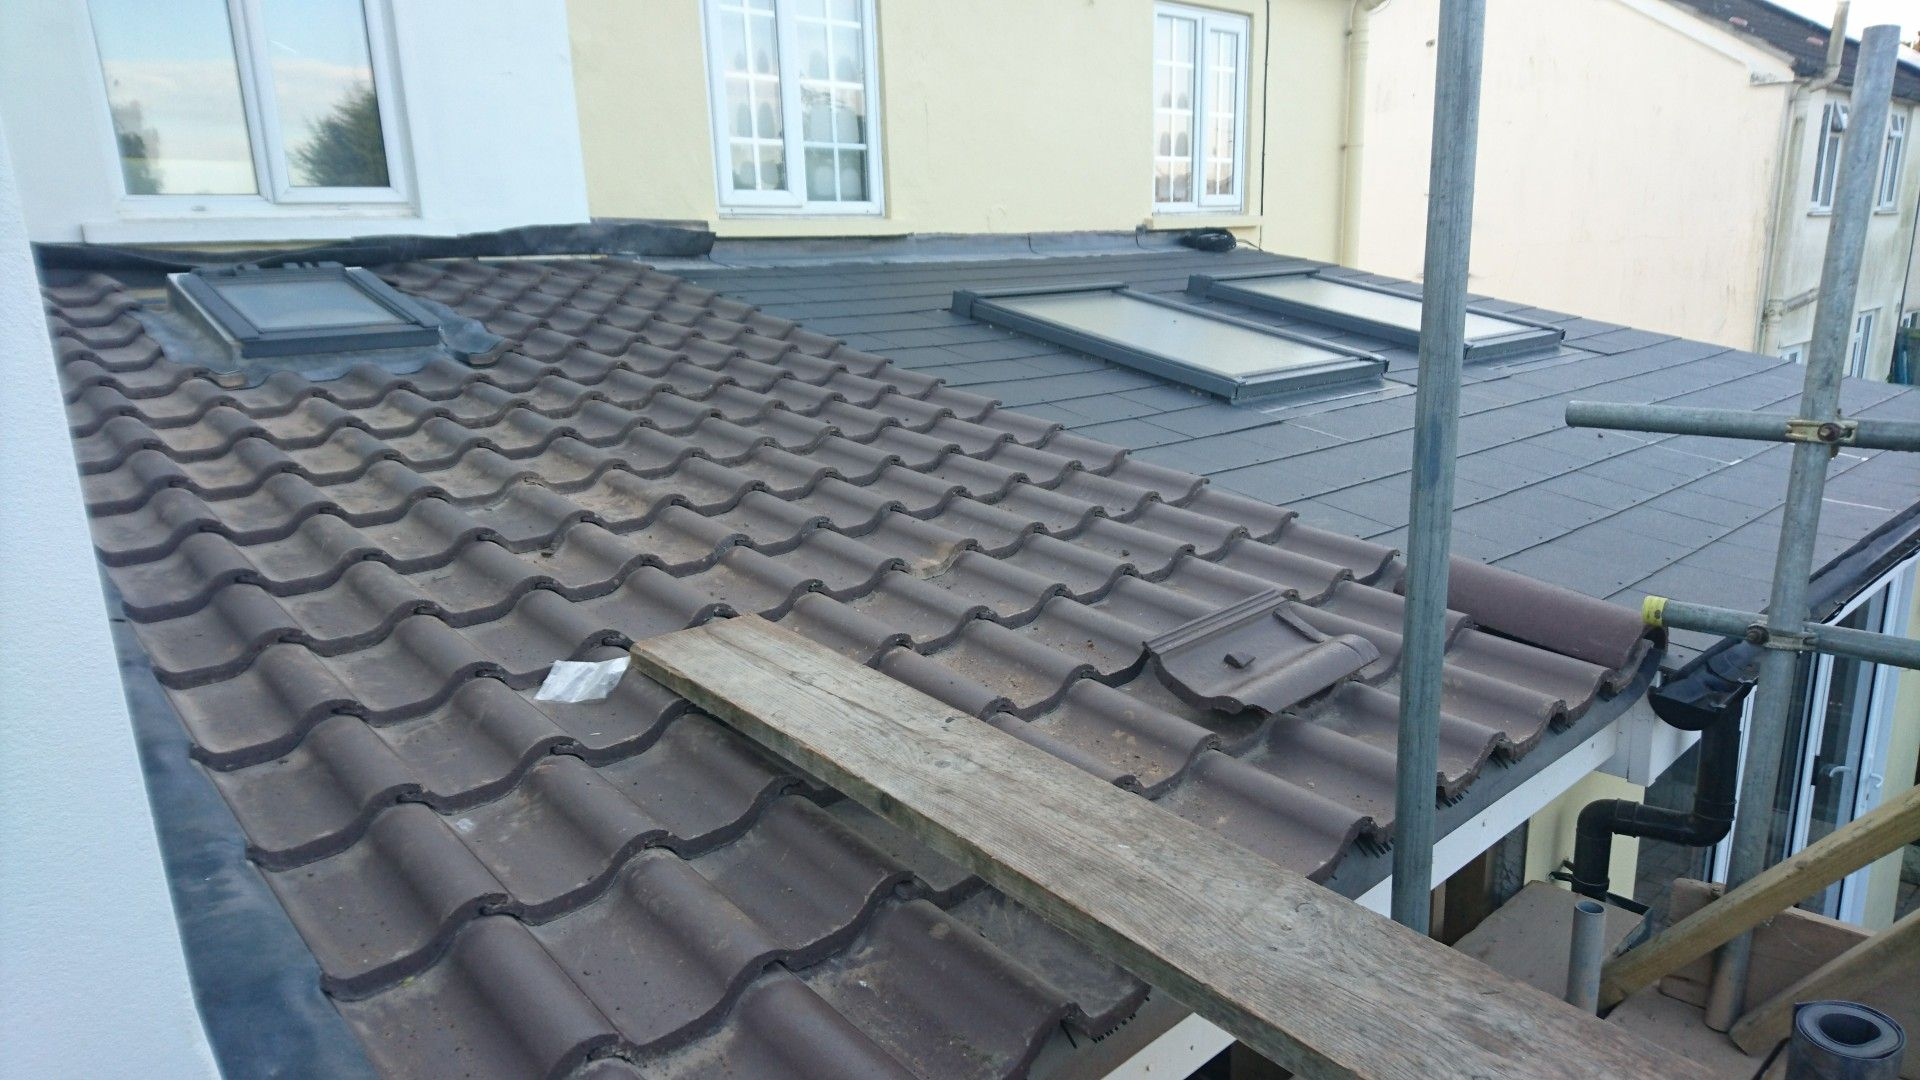 Day 34 Low Pitch Roof Tiled With The Special Low Pitch Forticrete Centurion Tiles Roof Tiles Roof Pitched Roof